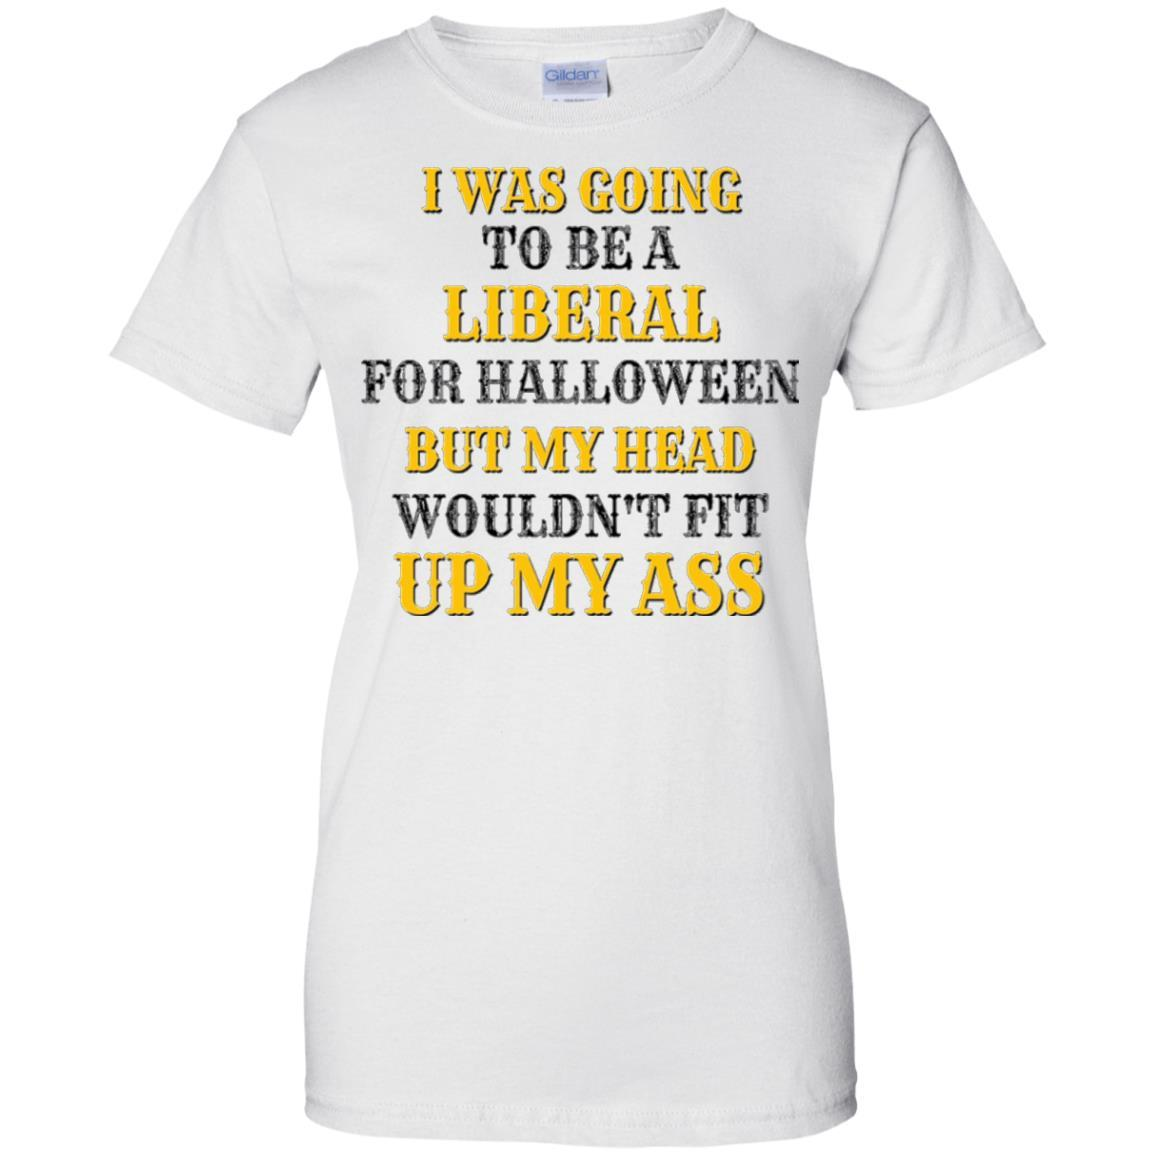 I Was Going to be a Liberal for Halloween Funny T-Shirt